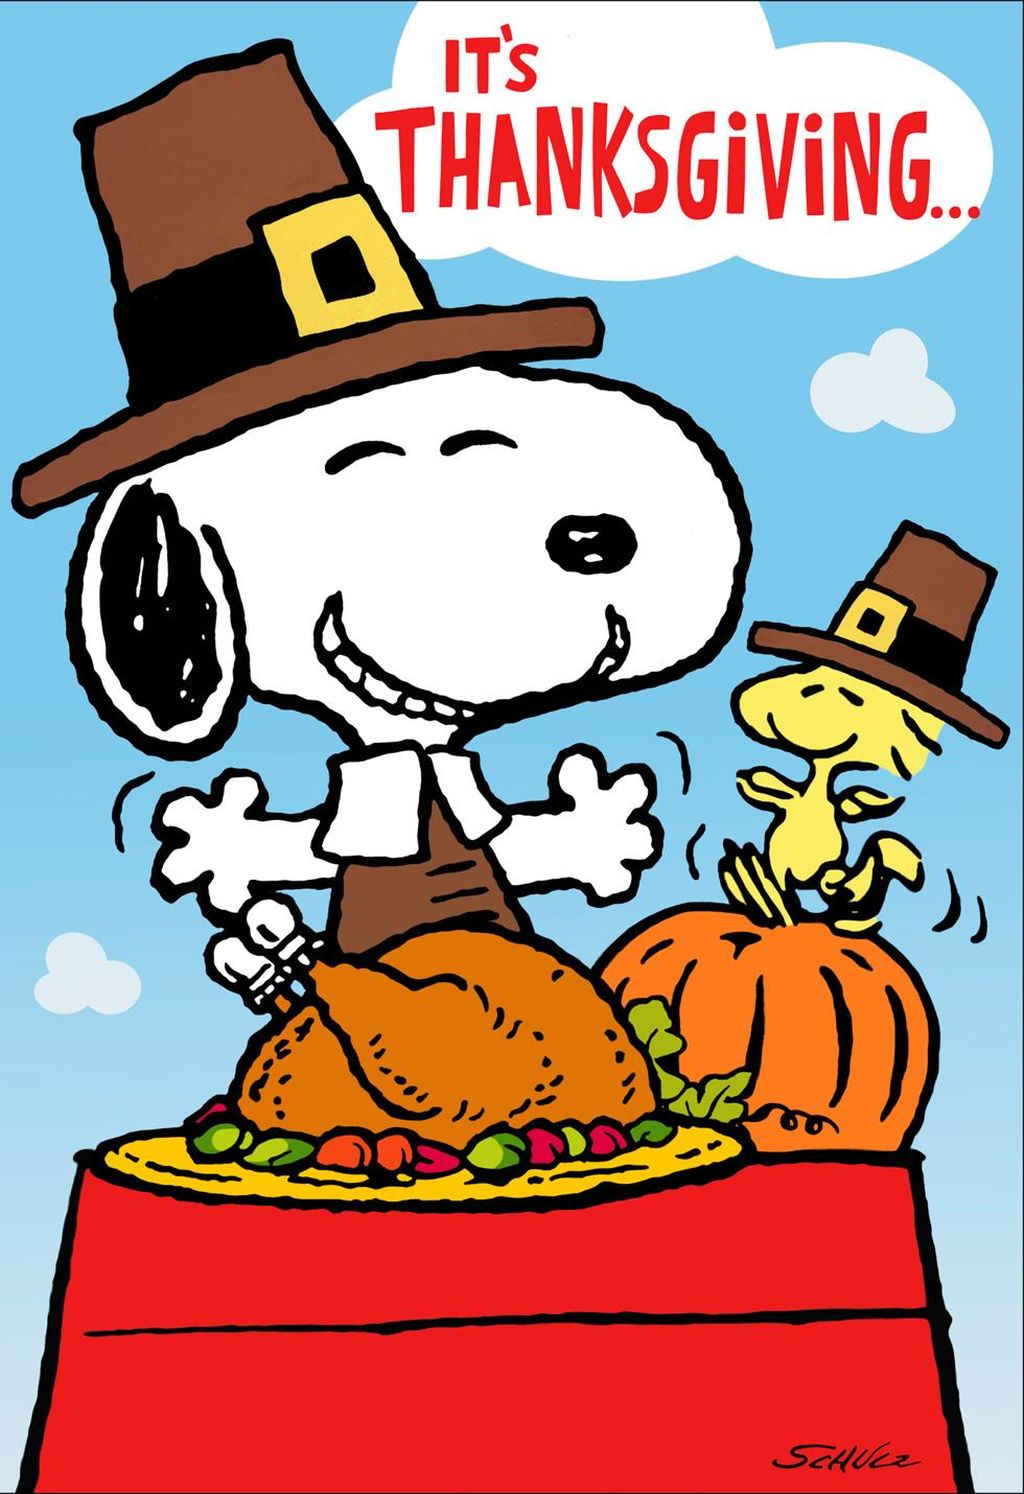 Feast clipart peanuts. Snoopy and woodstock thanksgiving